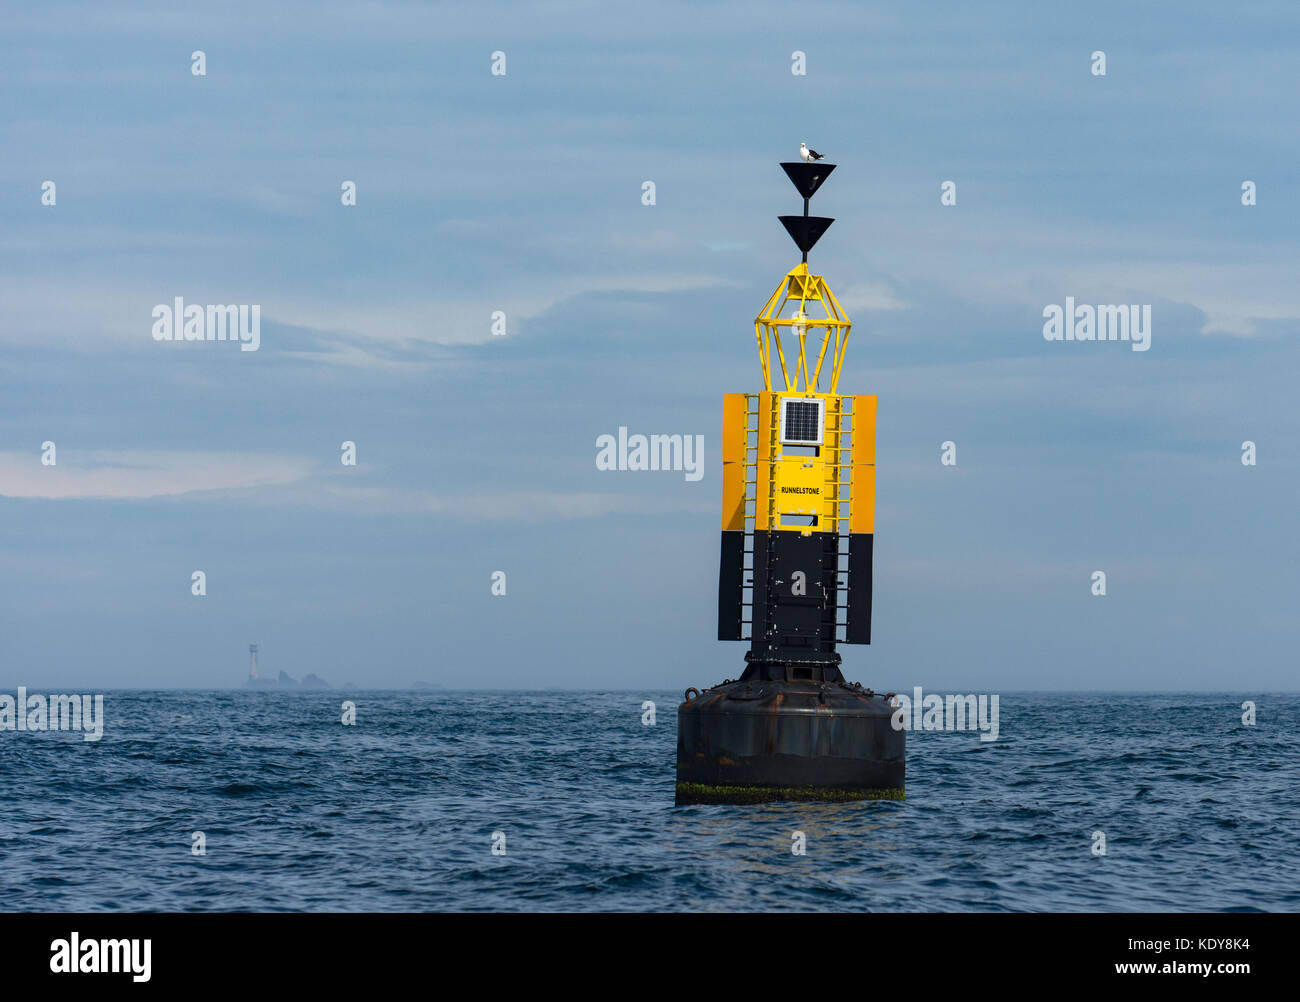 The Runnel Stone South Cardinal marker buoy with Longships lighthouse in the background on a calm day - Stock Image